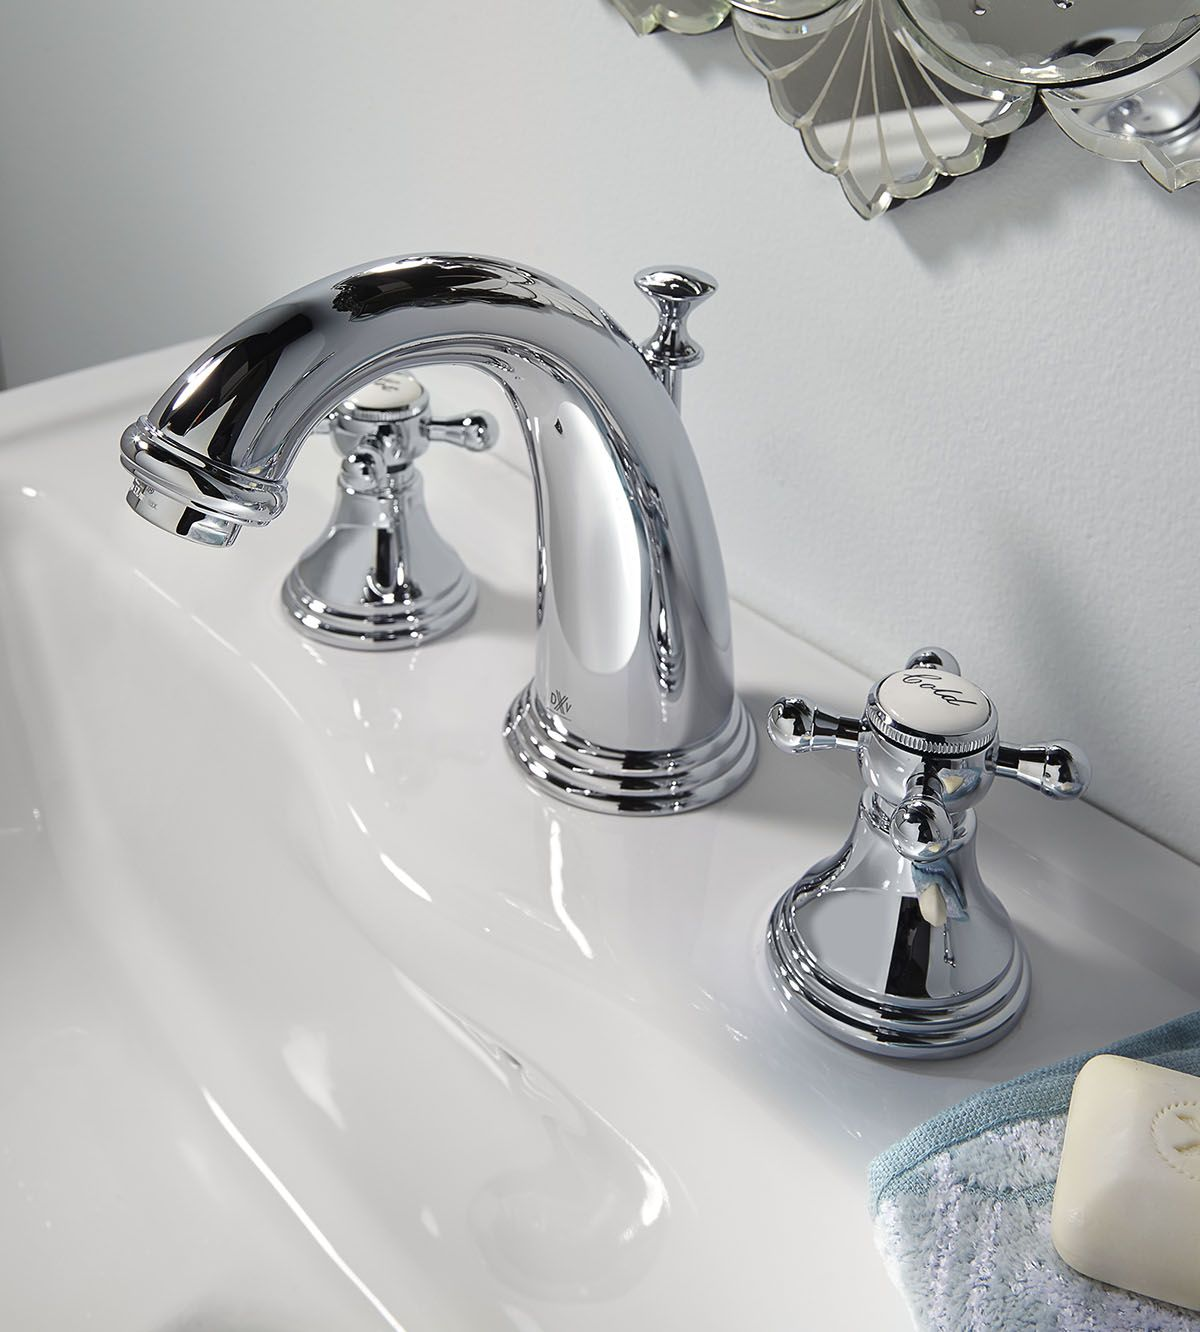 Ashbee Widespread Bathroom Faucet with Cross Handles by DXV #DXV ...